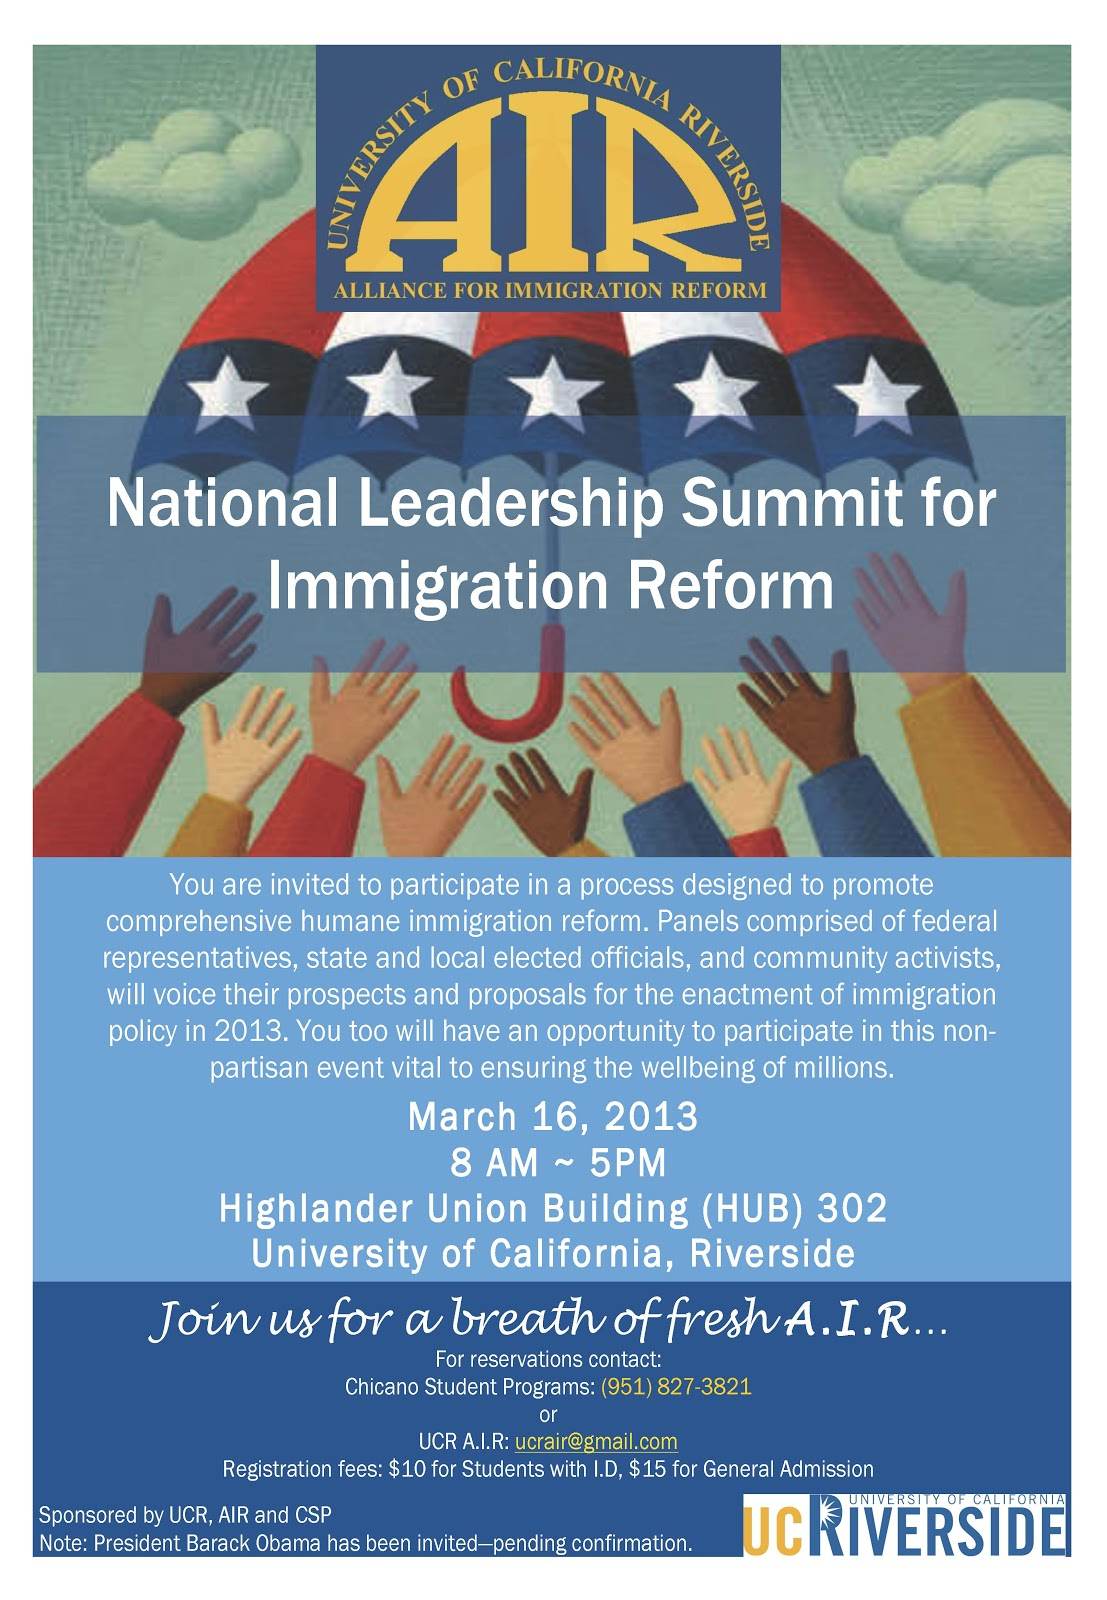 antiracismdsa 2013 immigration reform see essay below